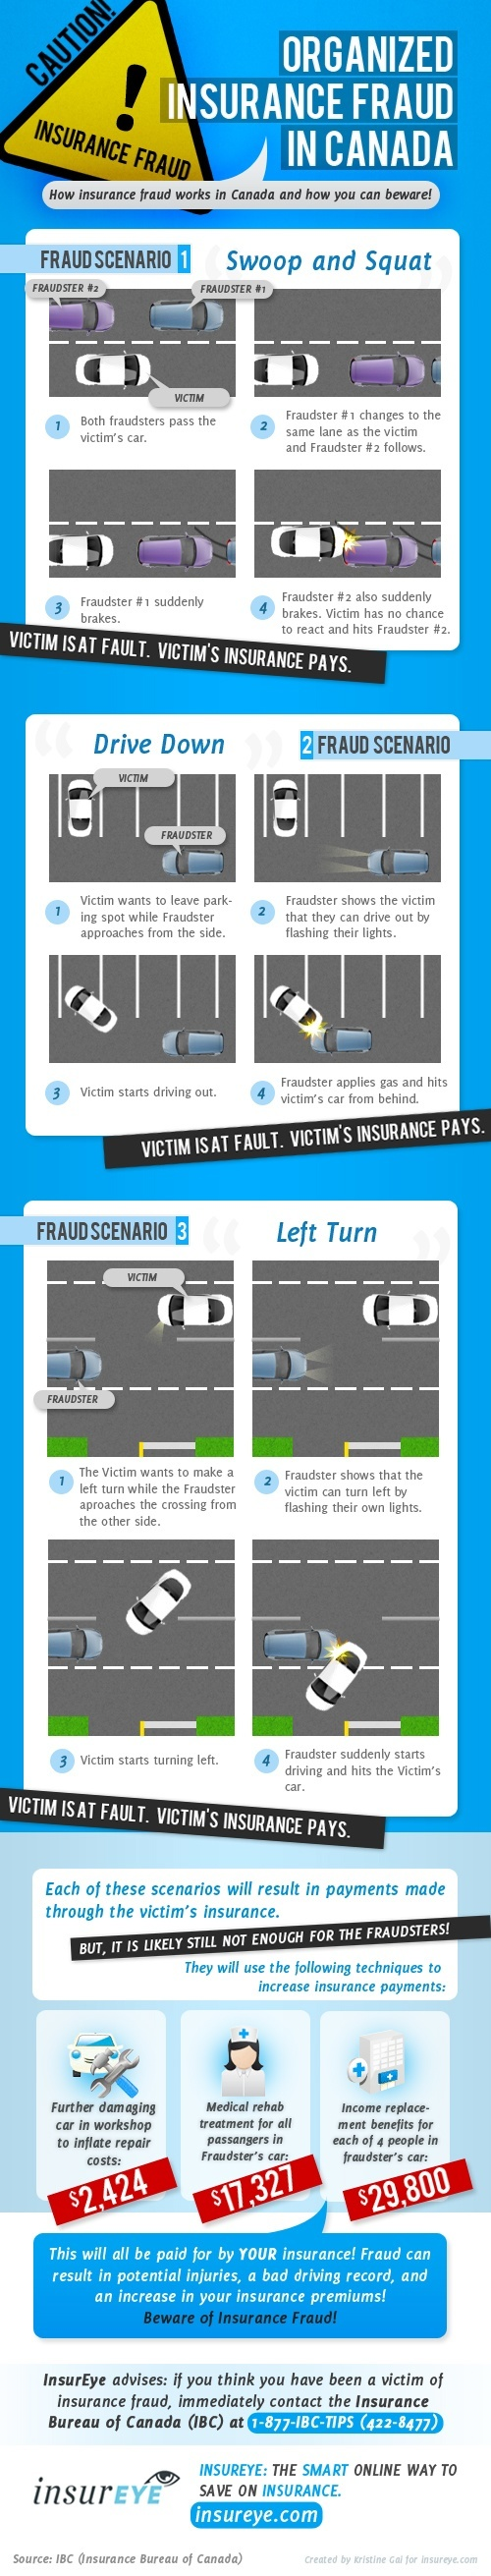 3 Auto Insurance Fraud Scenarios - What Every Person Should Know